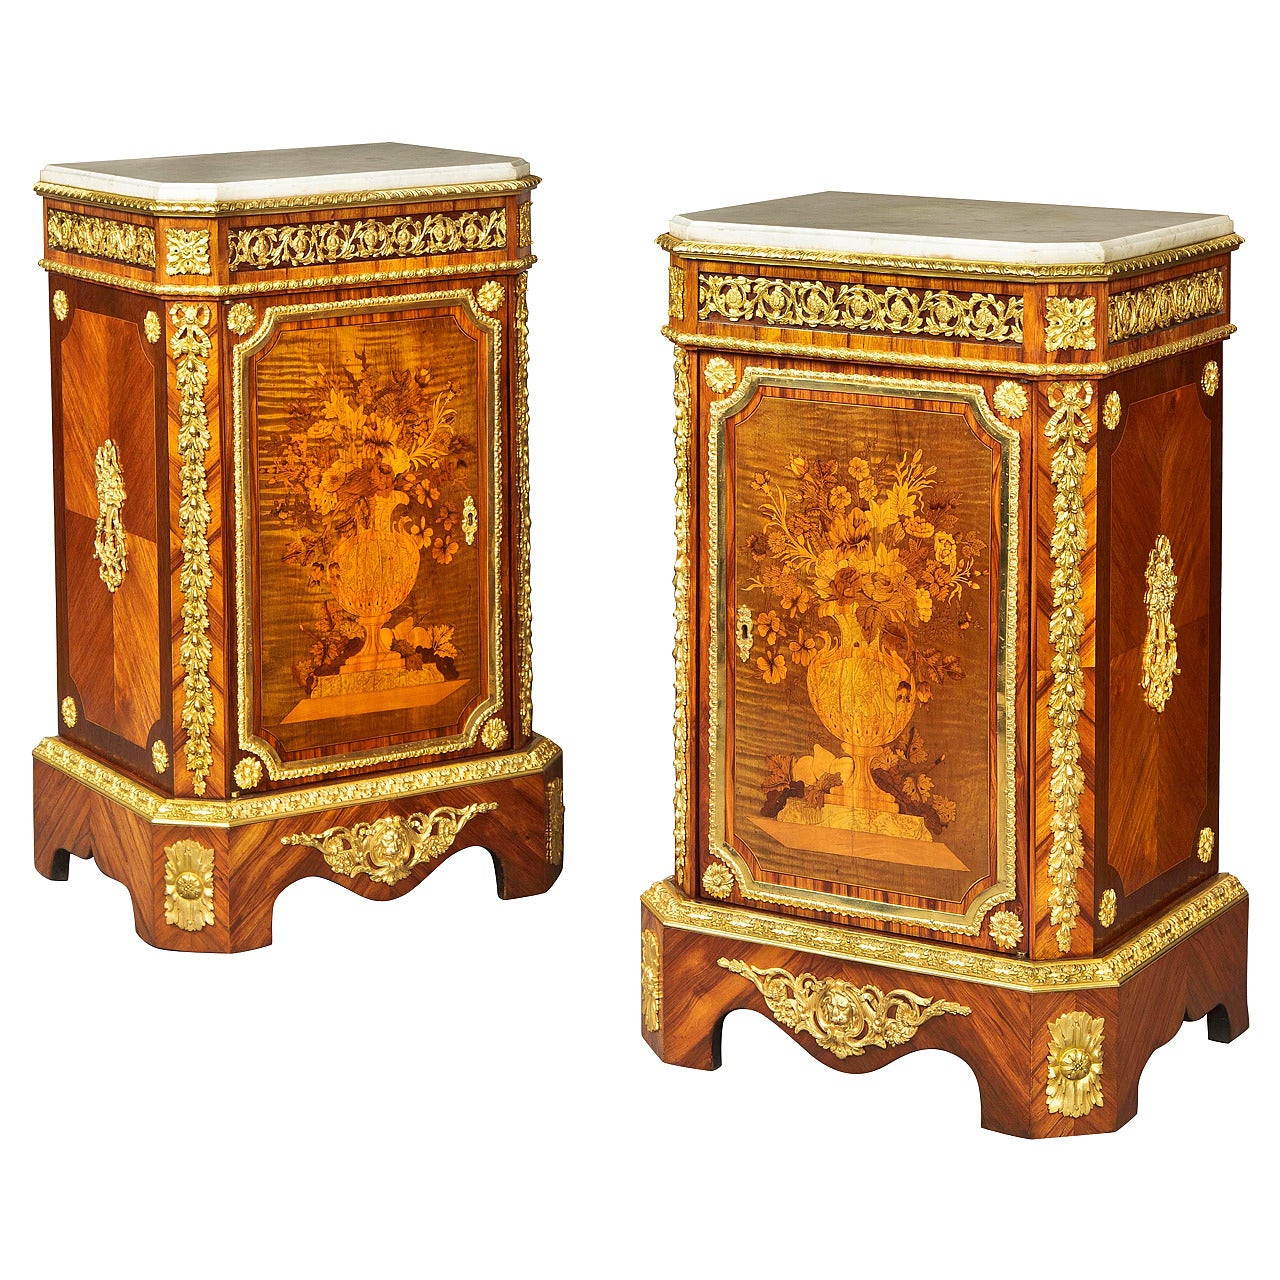 Pair of French 19th Century Floral Marquetry Side Cabinets with Marble Tops